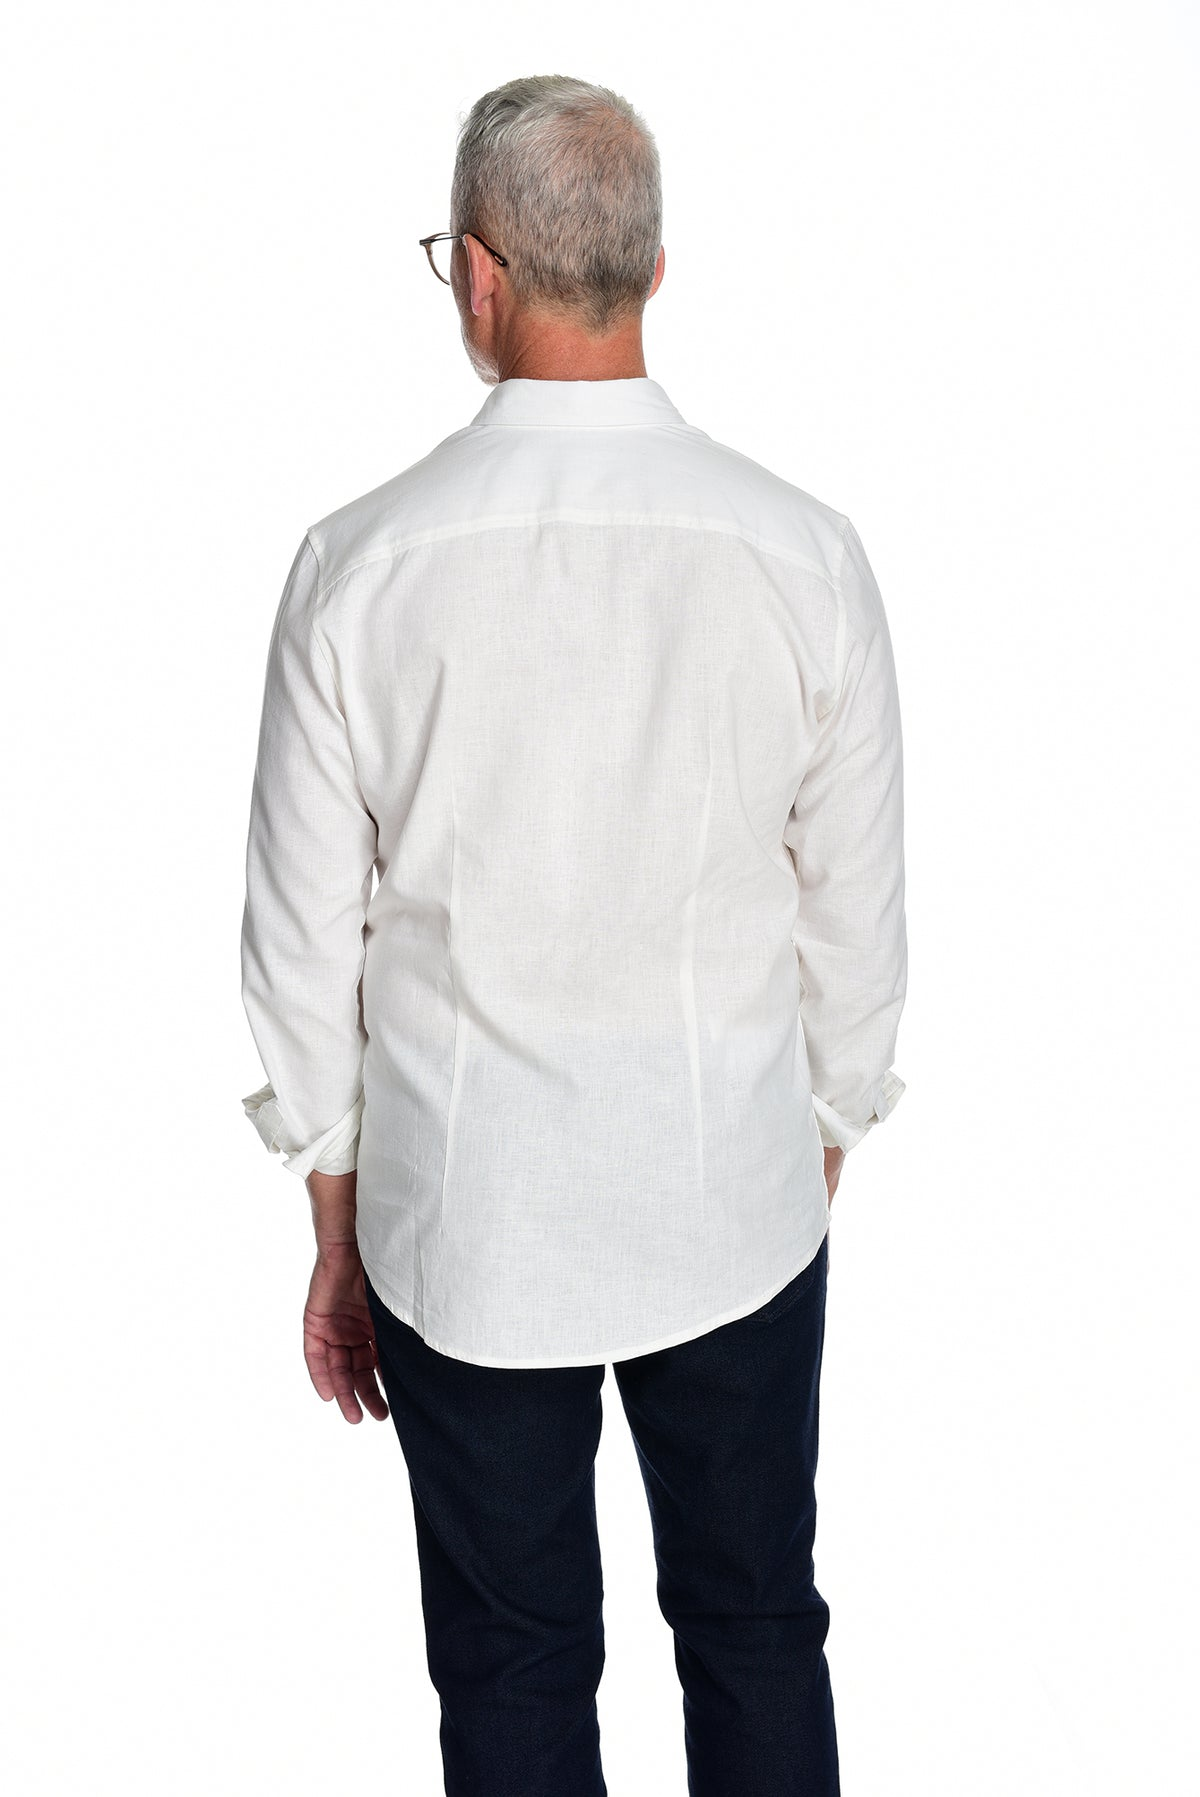 Men's Long Sleeve Button Down Shirt the Bastille Shirt by Fisher + Baker White Backside